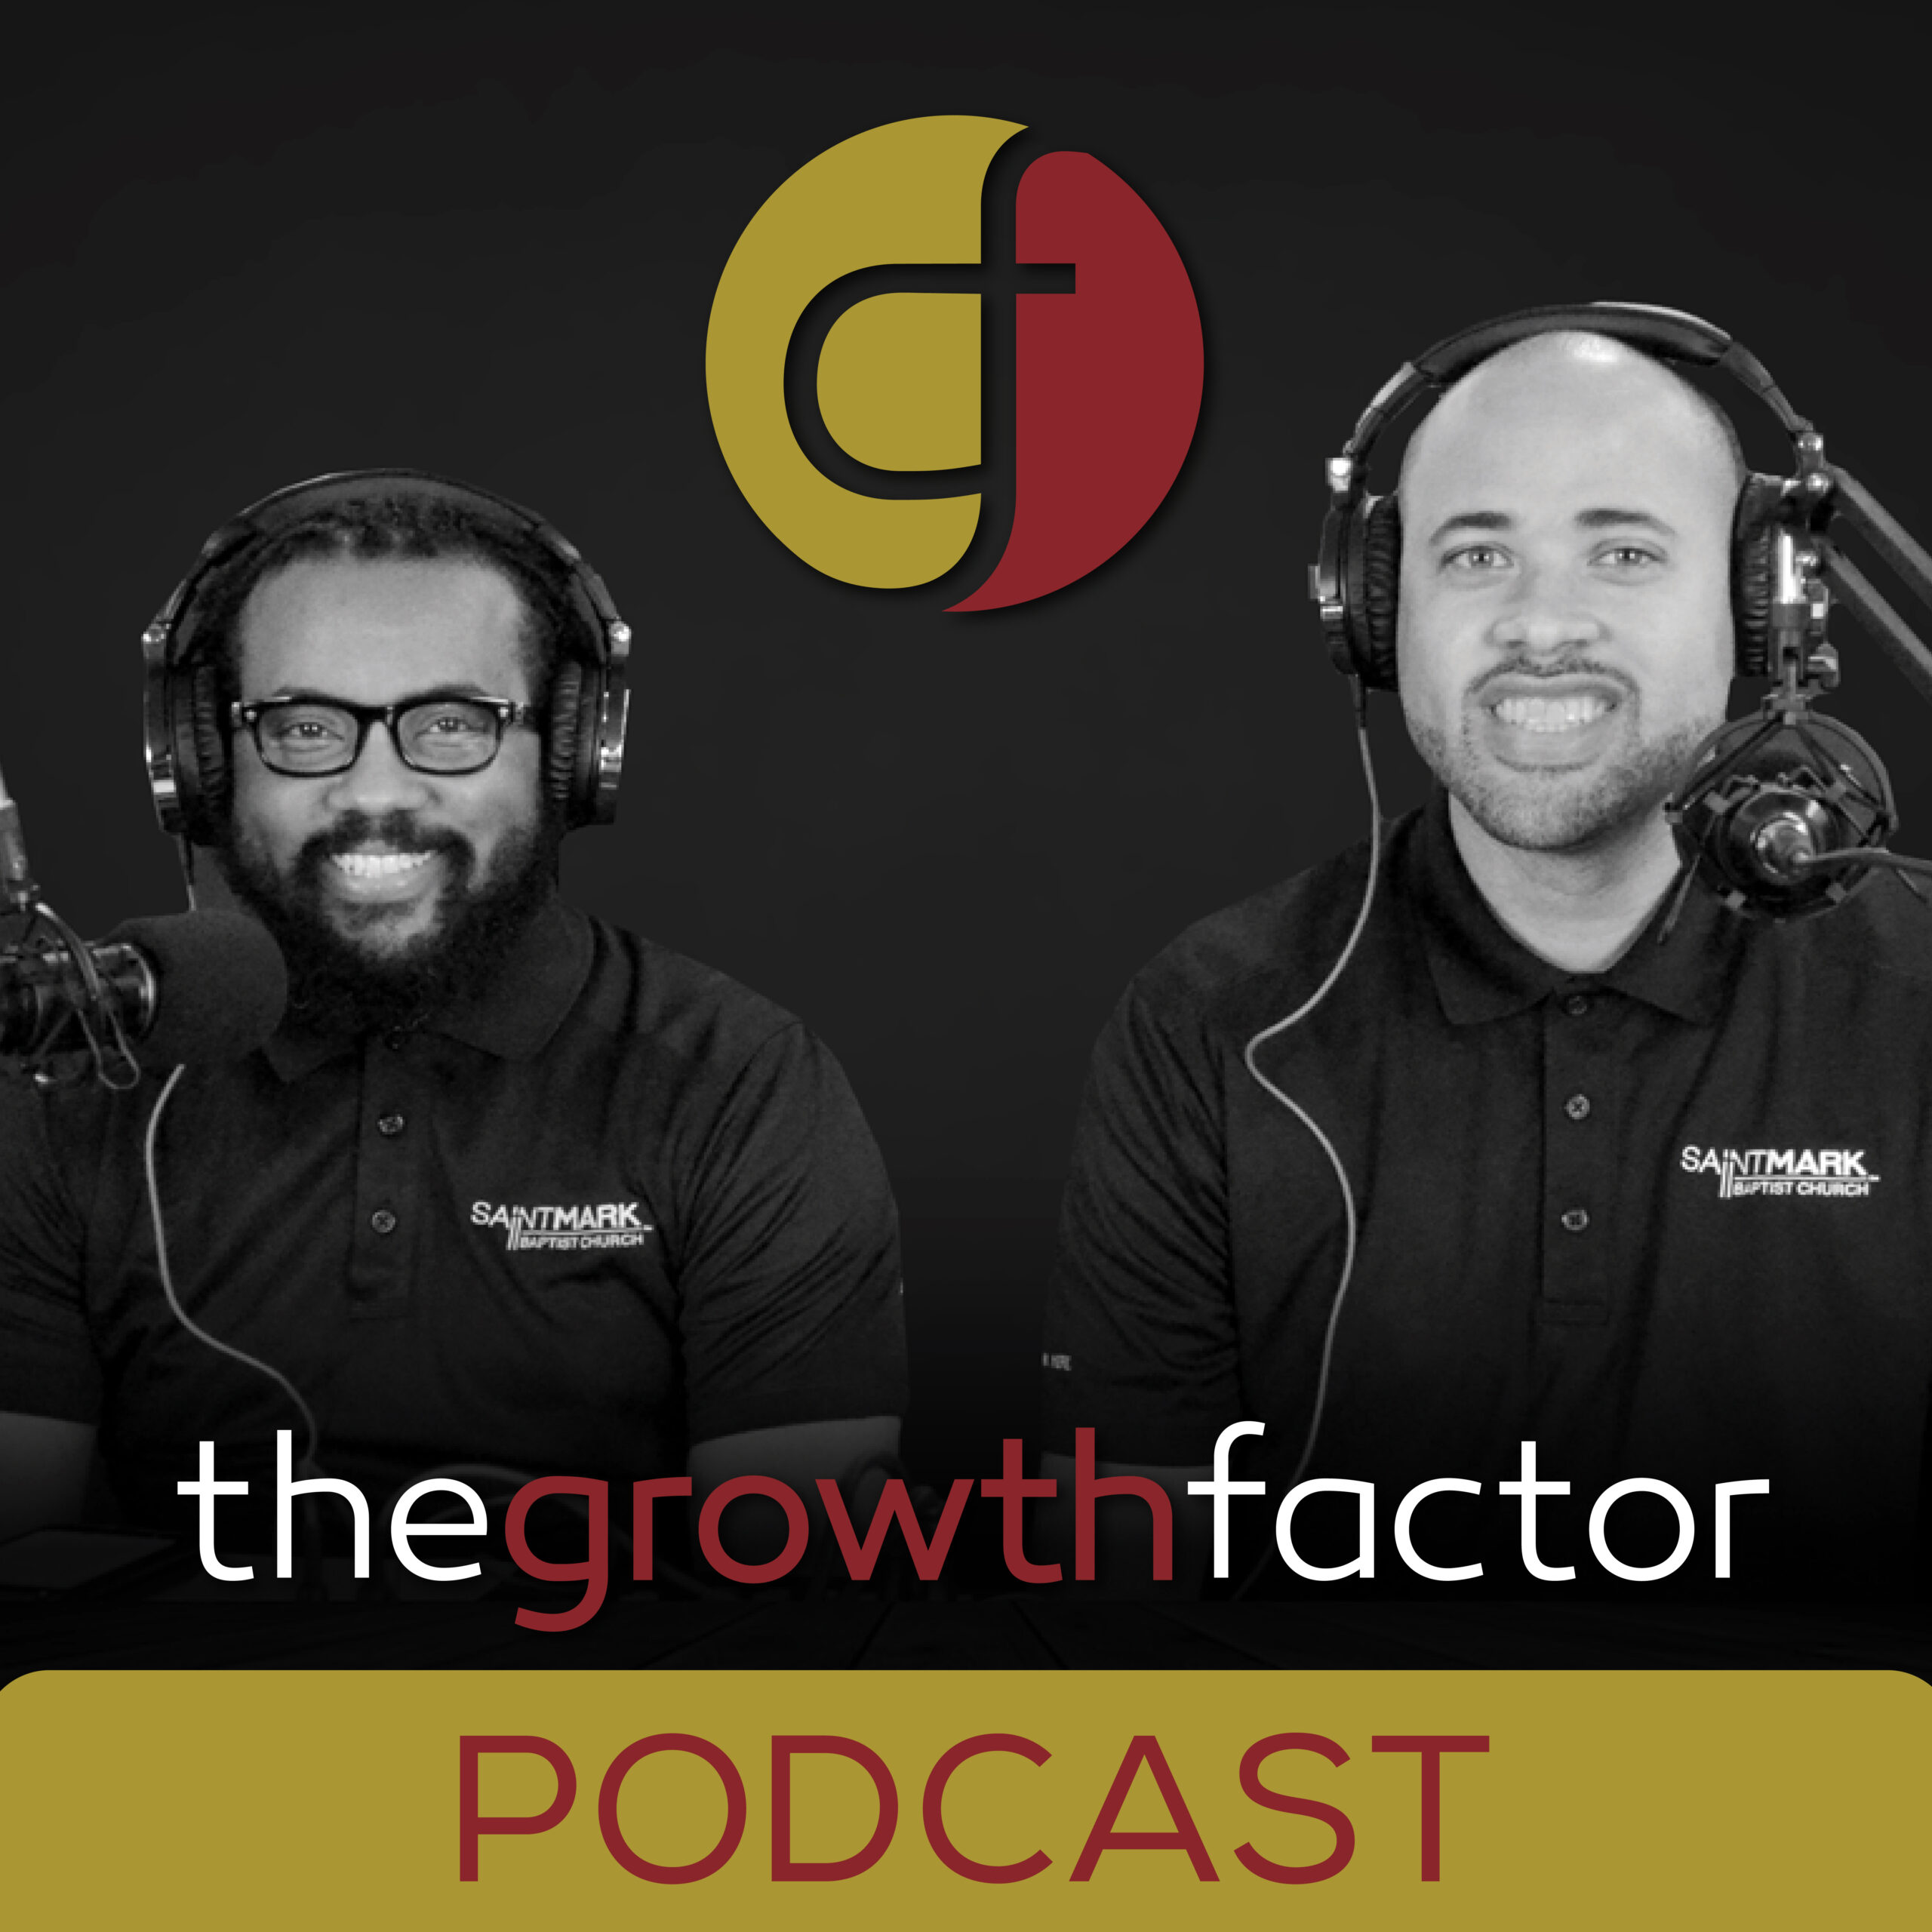 The Growth Factor